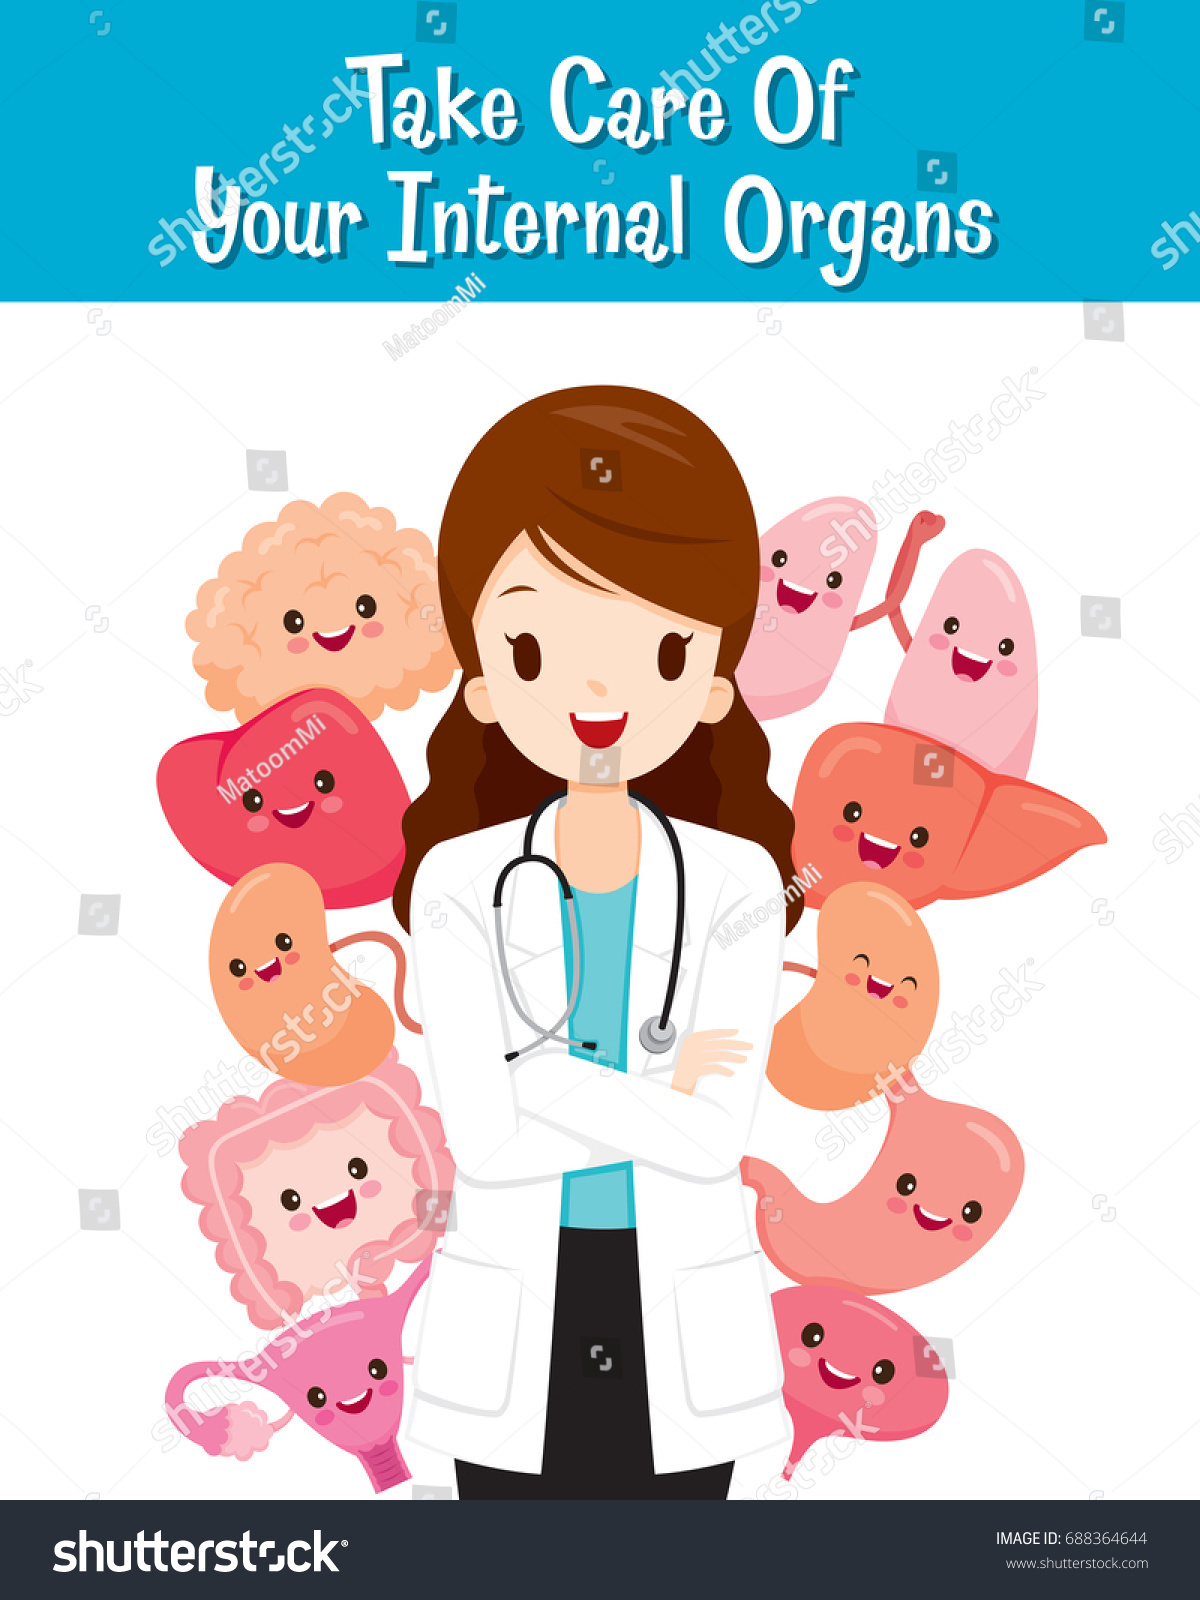 woman doctor human internal organs cartoon stock vector royalty